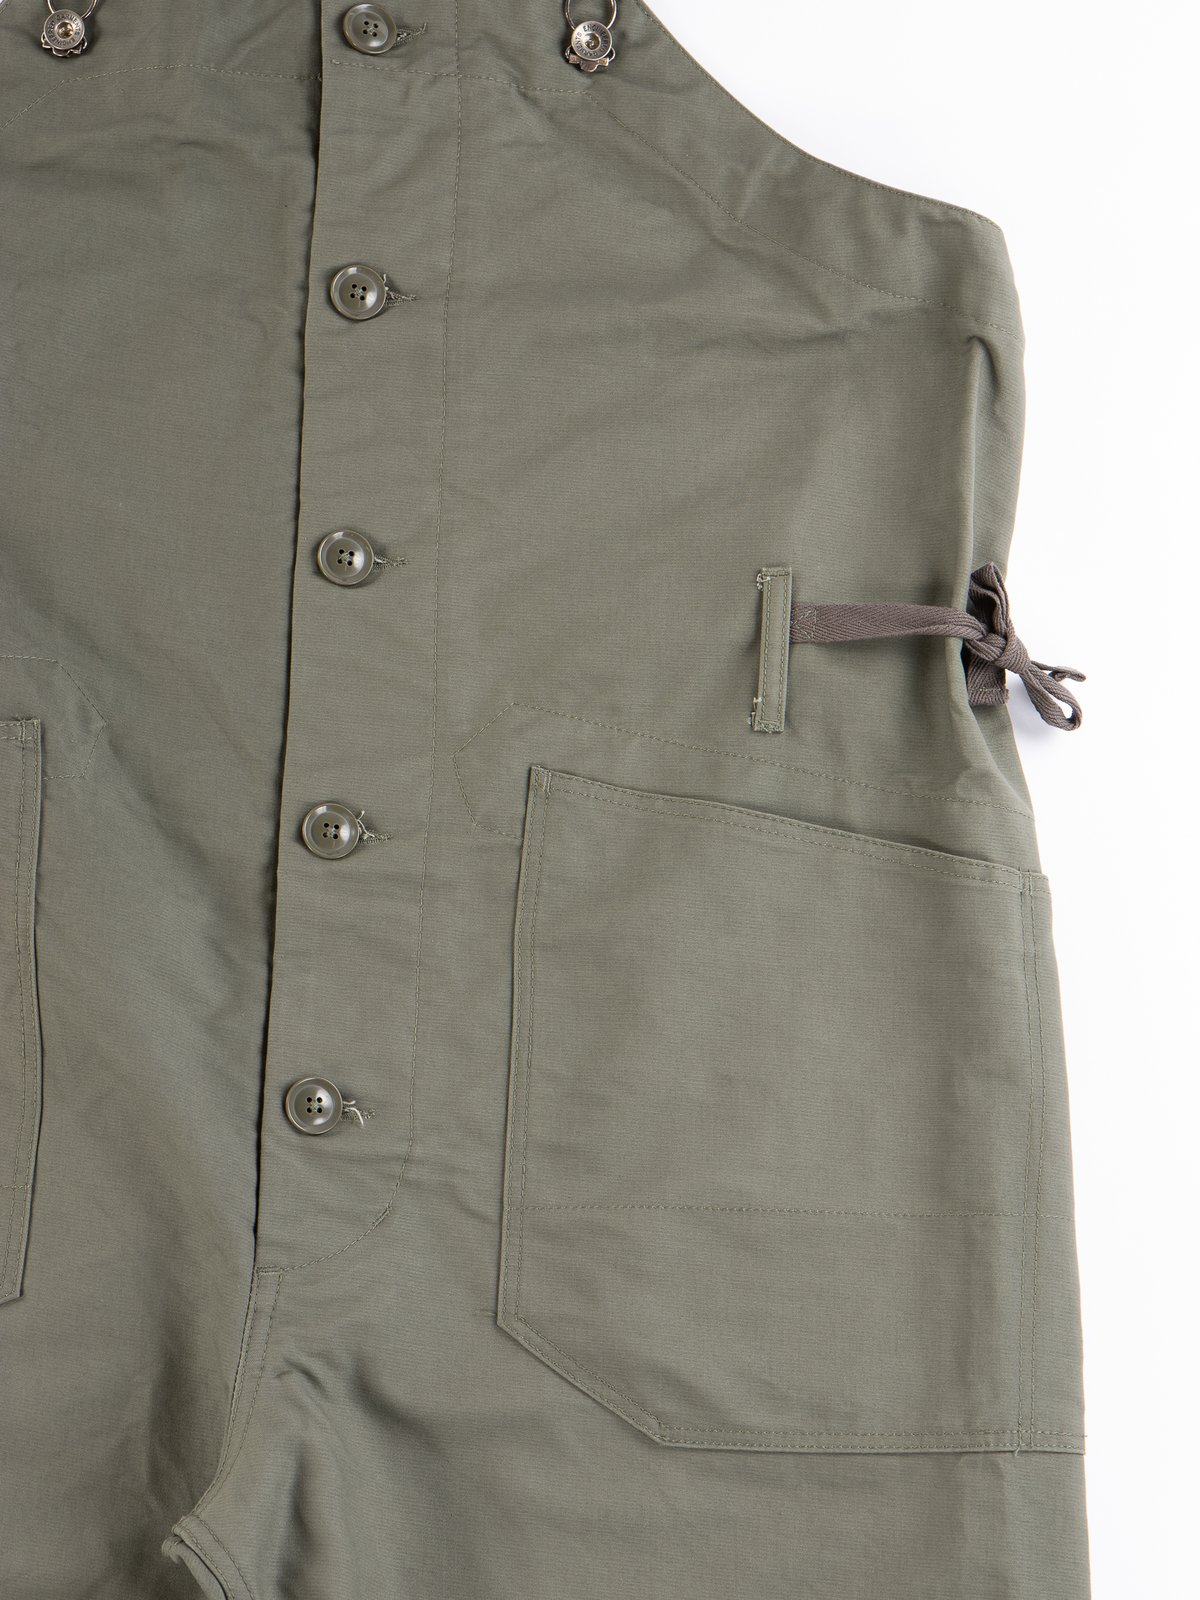 Olive Cotton Double Cloth Overalls - Image 3